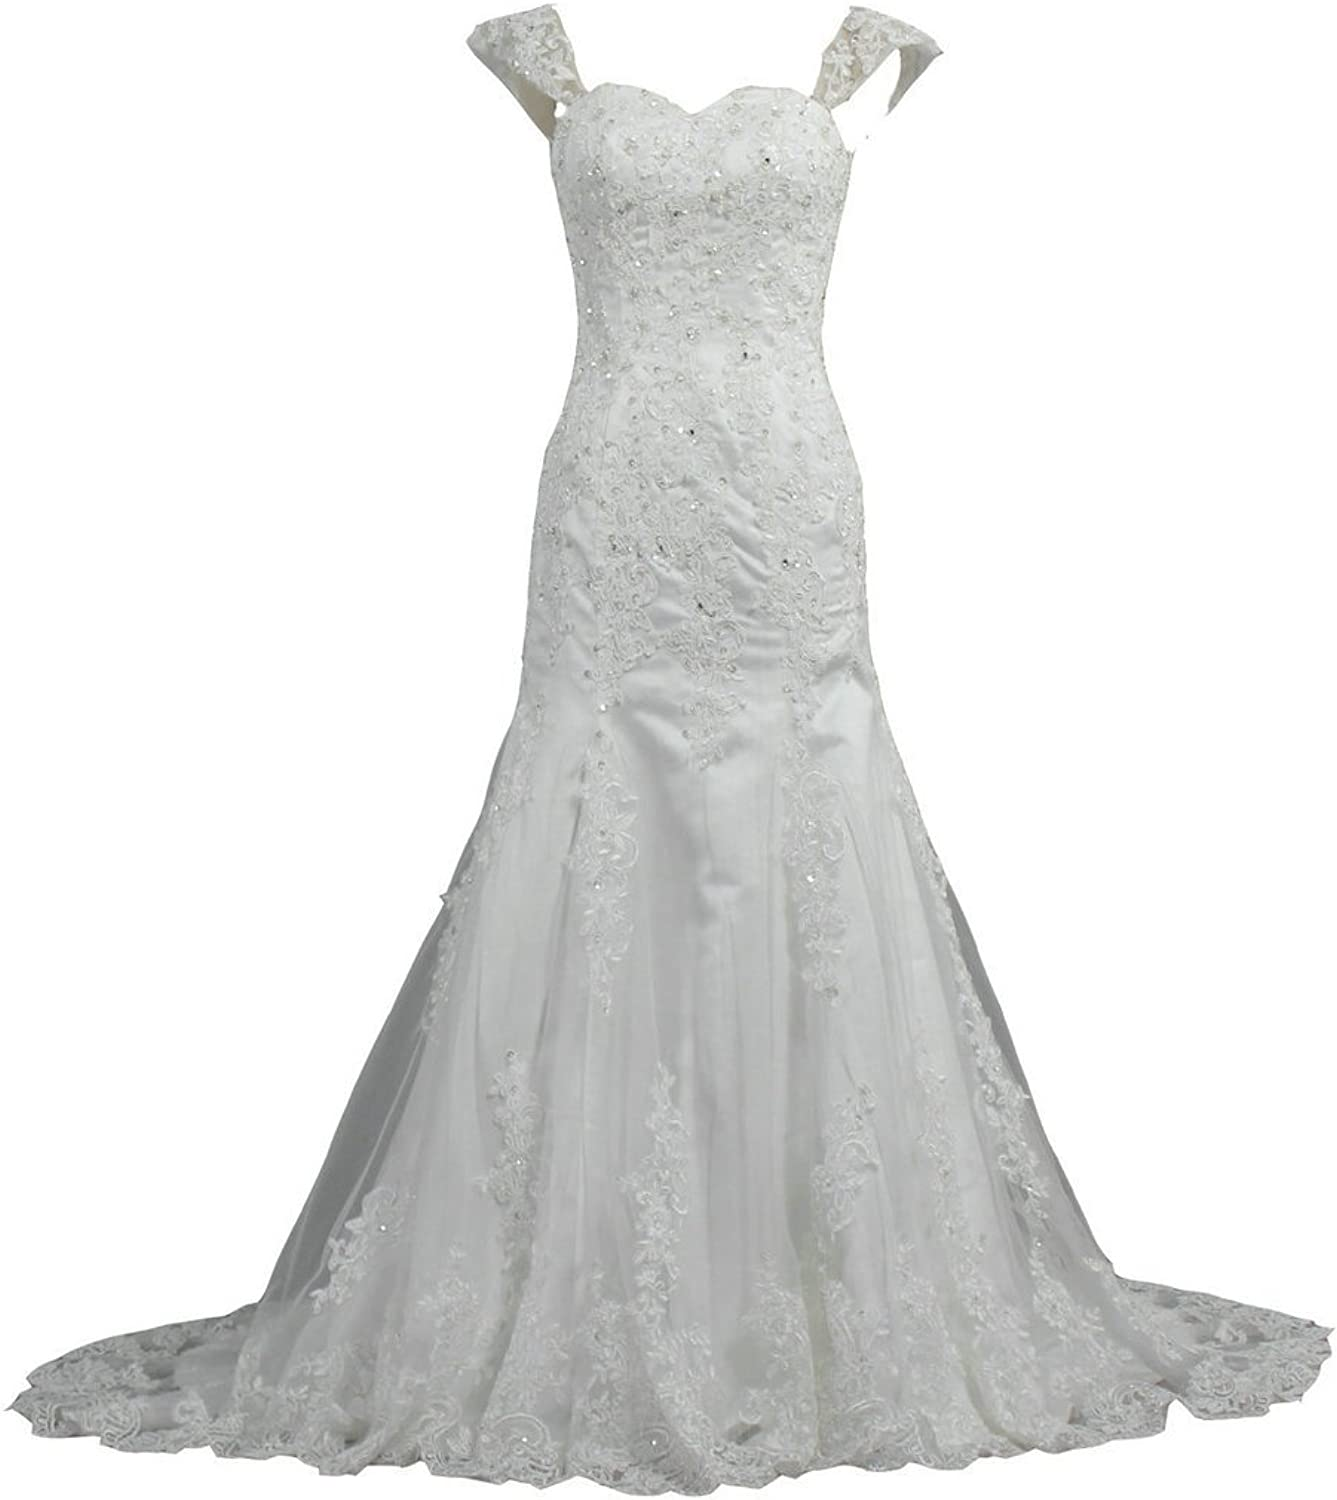 ANTS Women's Cap Sleeve Beaded Lace Tulle Wedding Dress Bridal Gown